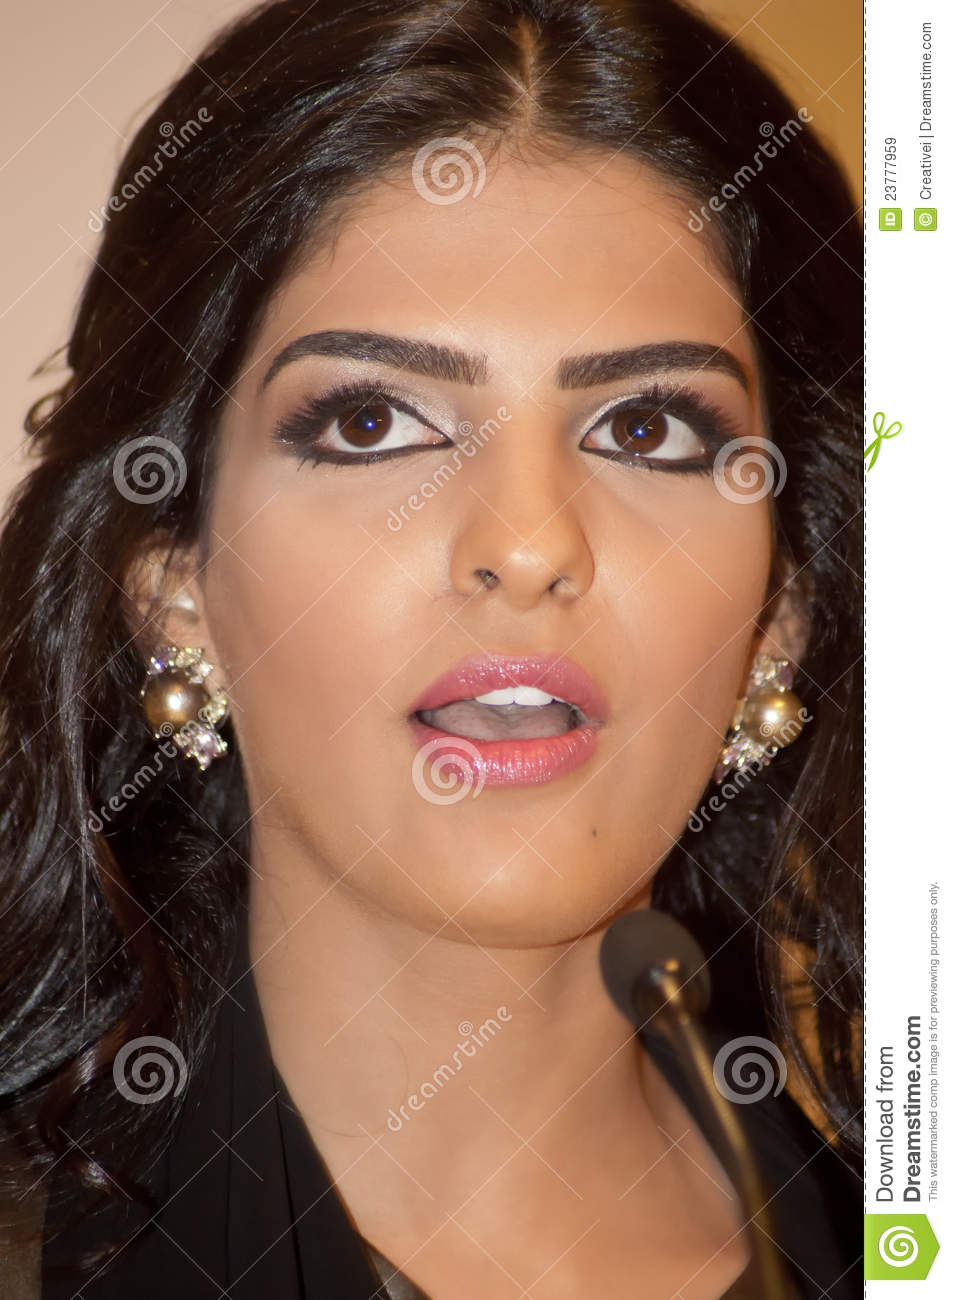 her highness princess ameerah al taweel editorial stock image image